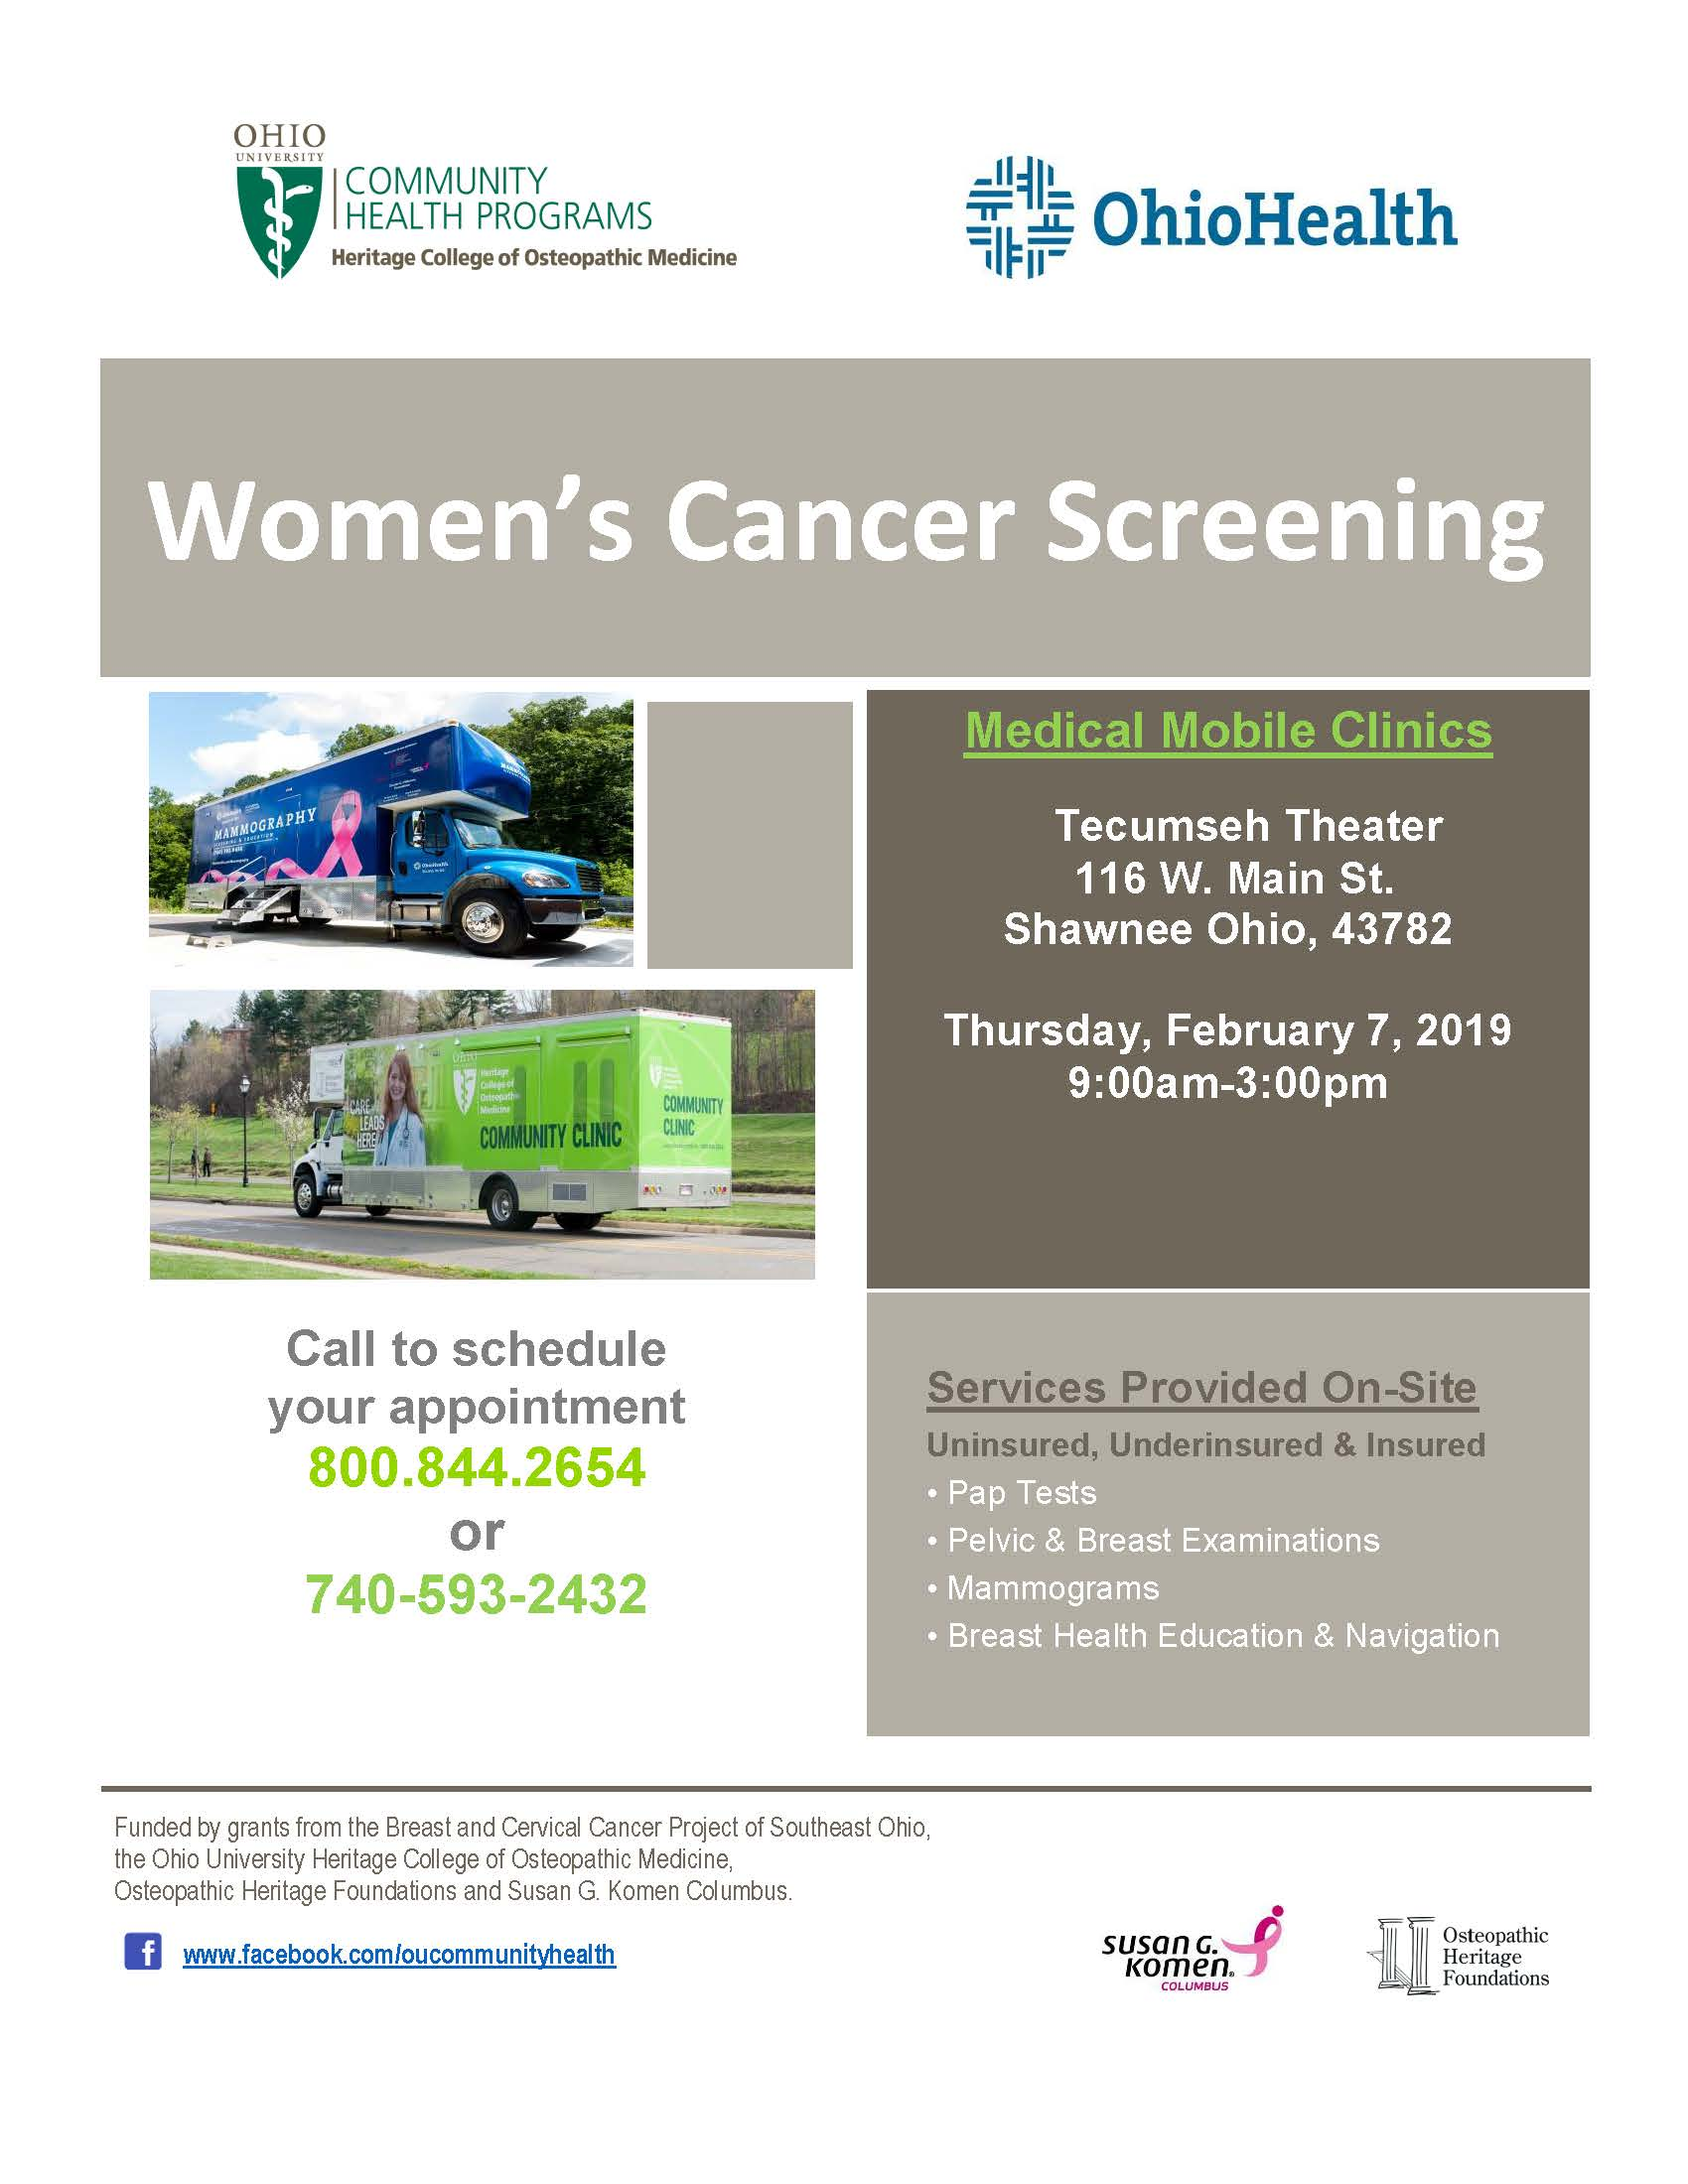 Women's cancer screening clinic in Perry County (Shawnee)